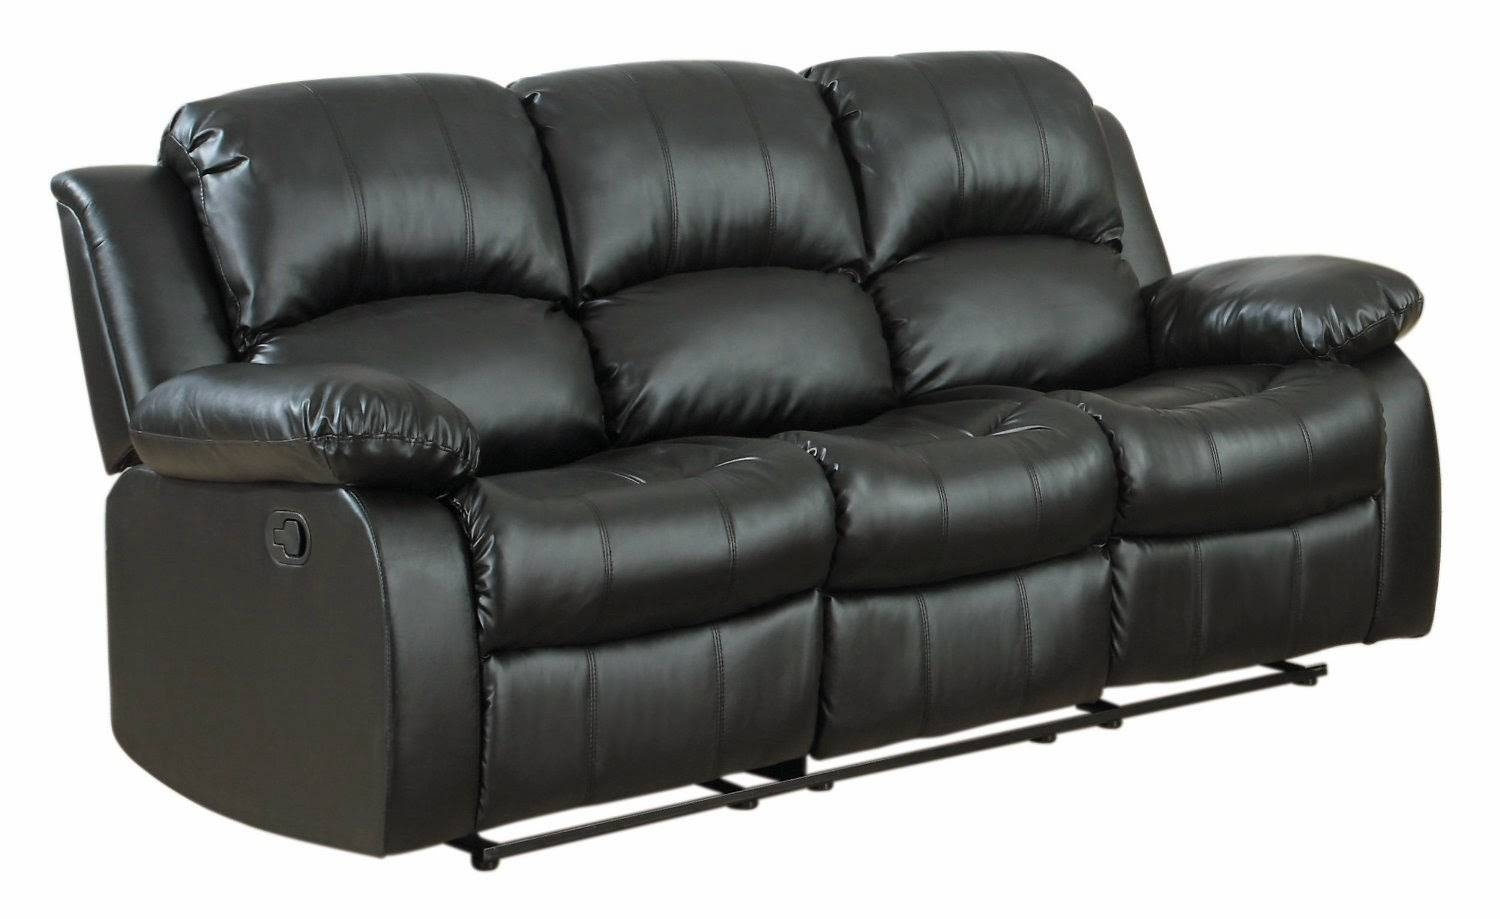 Reclining Sofas For Sale: Berkline Leather Reclining Sofa Costco with Berkline Leather Recliner Sofas (Image 13 of 15)